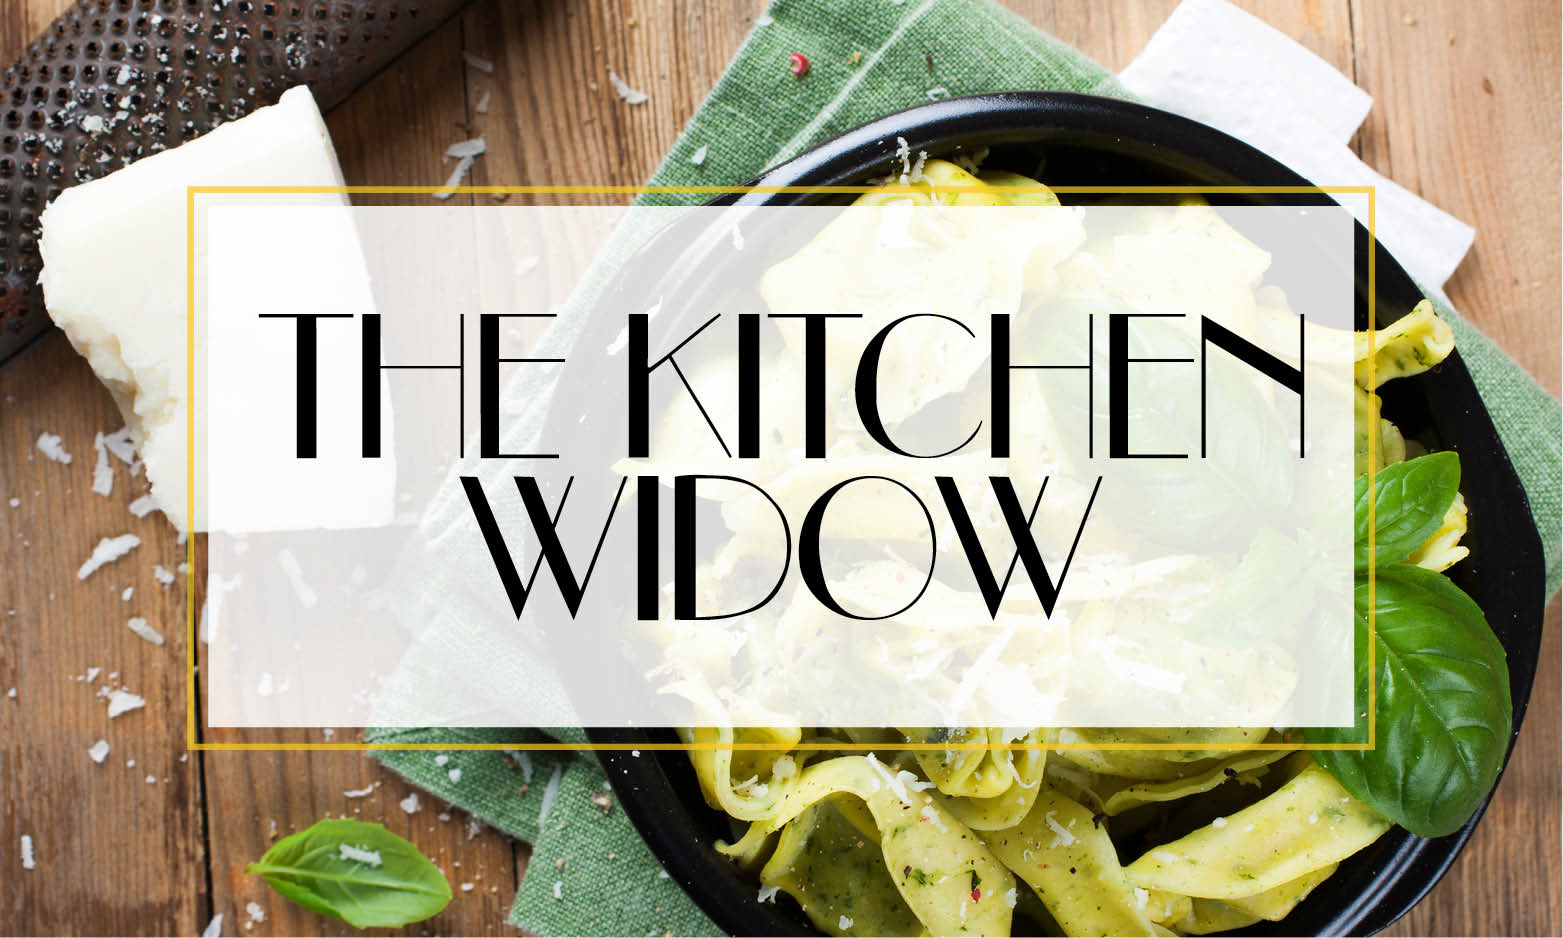 the kitchen widow, tembi locke